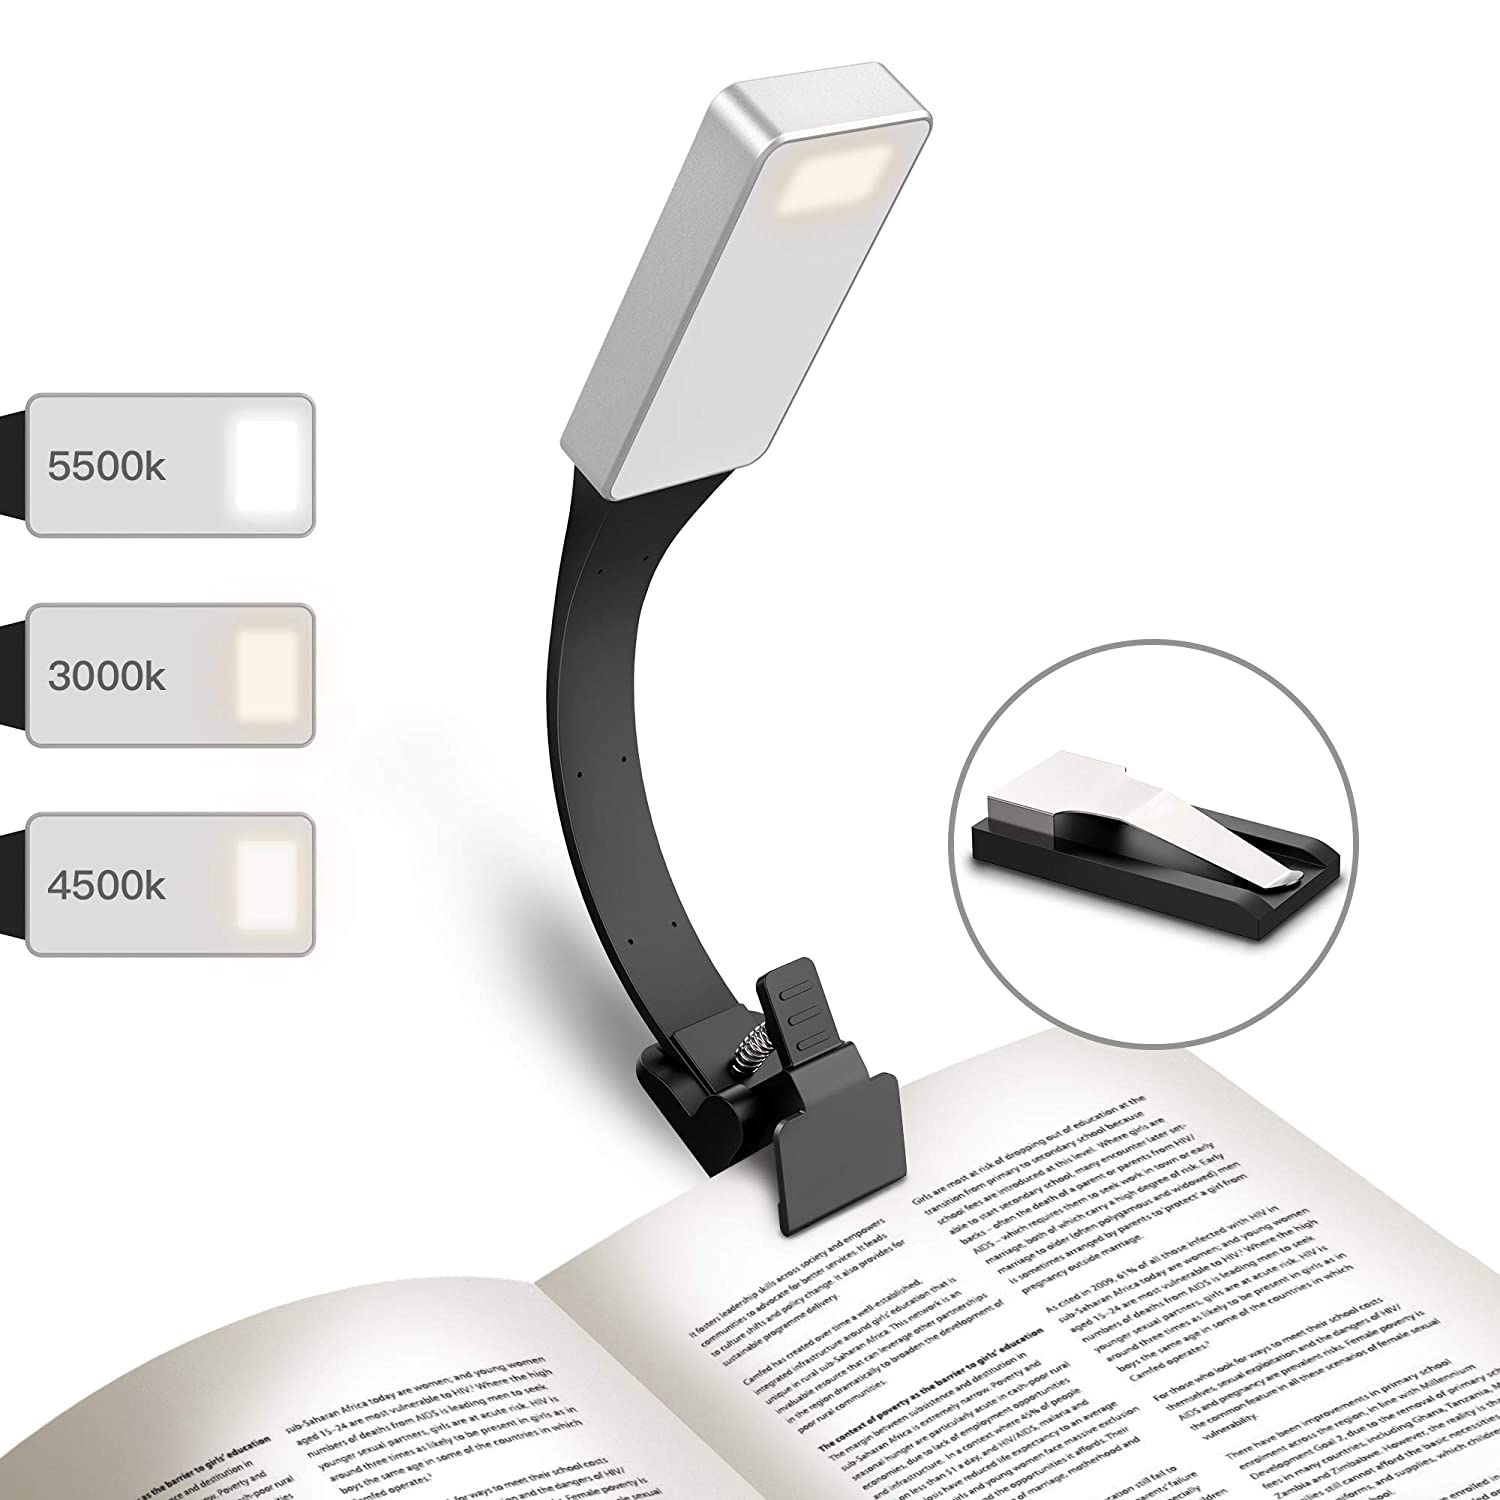 GeeRic LED Reading Light USB Rechargeable Book Light 2018 Upgraded Veision 50 Lumens 3 Brightness Levels Reading Lamp with Clip for iPad/ Kindle/eBook Reader and Books LRLB